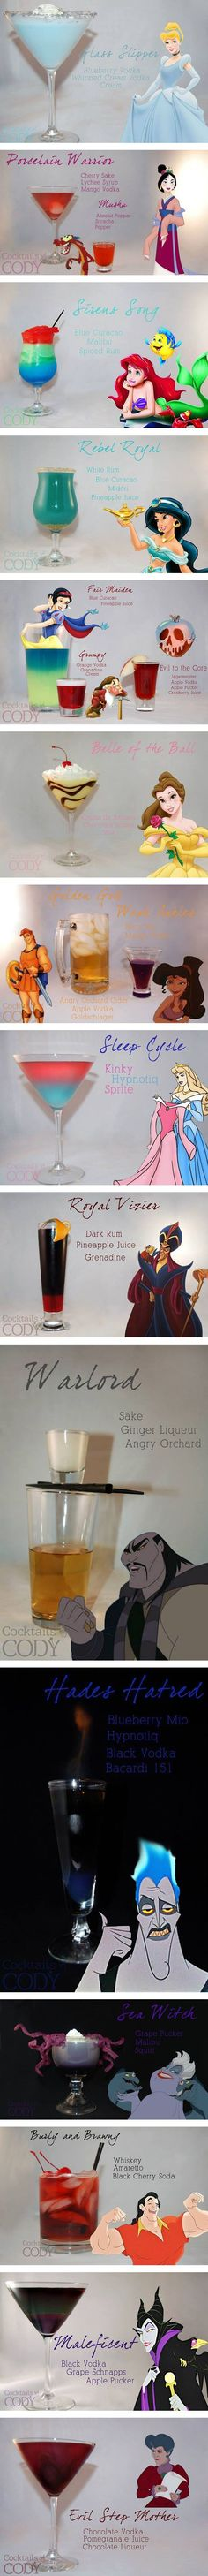 Disney Cocktails disney cocktail recipe recipes ingredients instructions drink recipes alcohol drink recipes party ideas party favors Cocktail Recipe